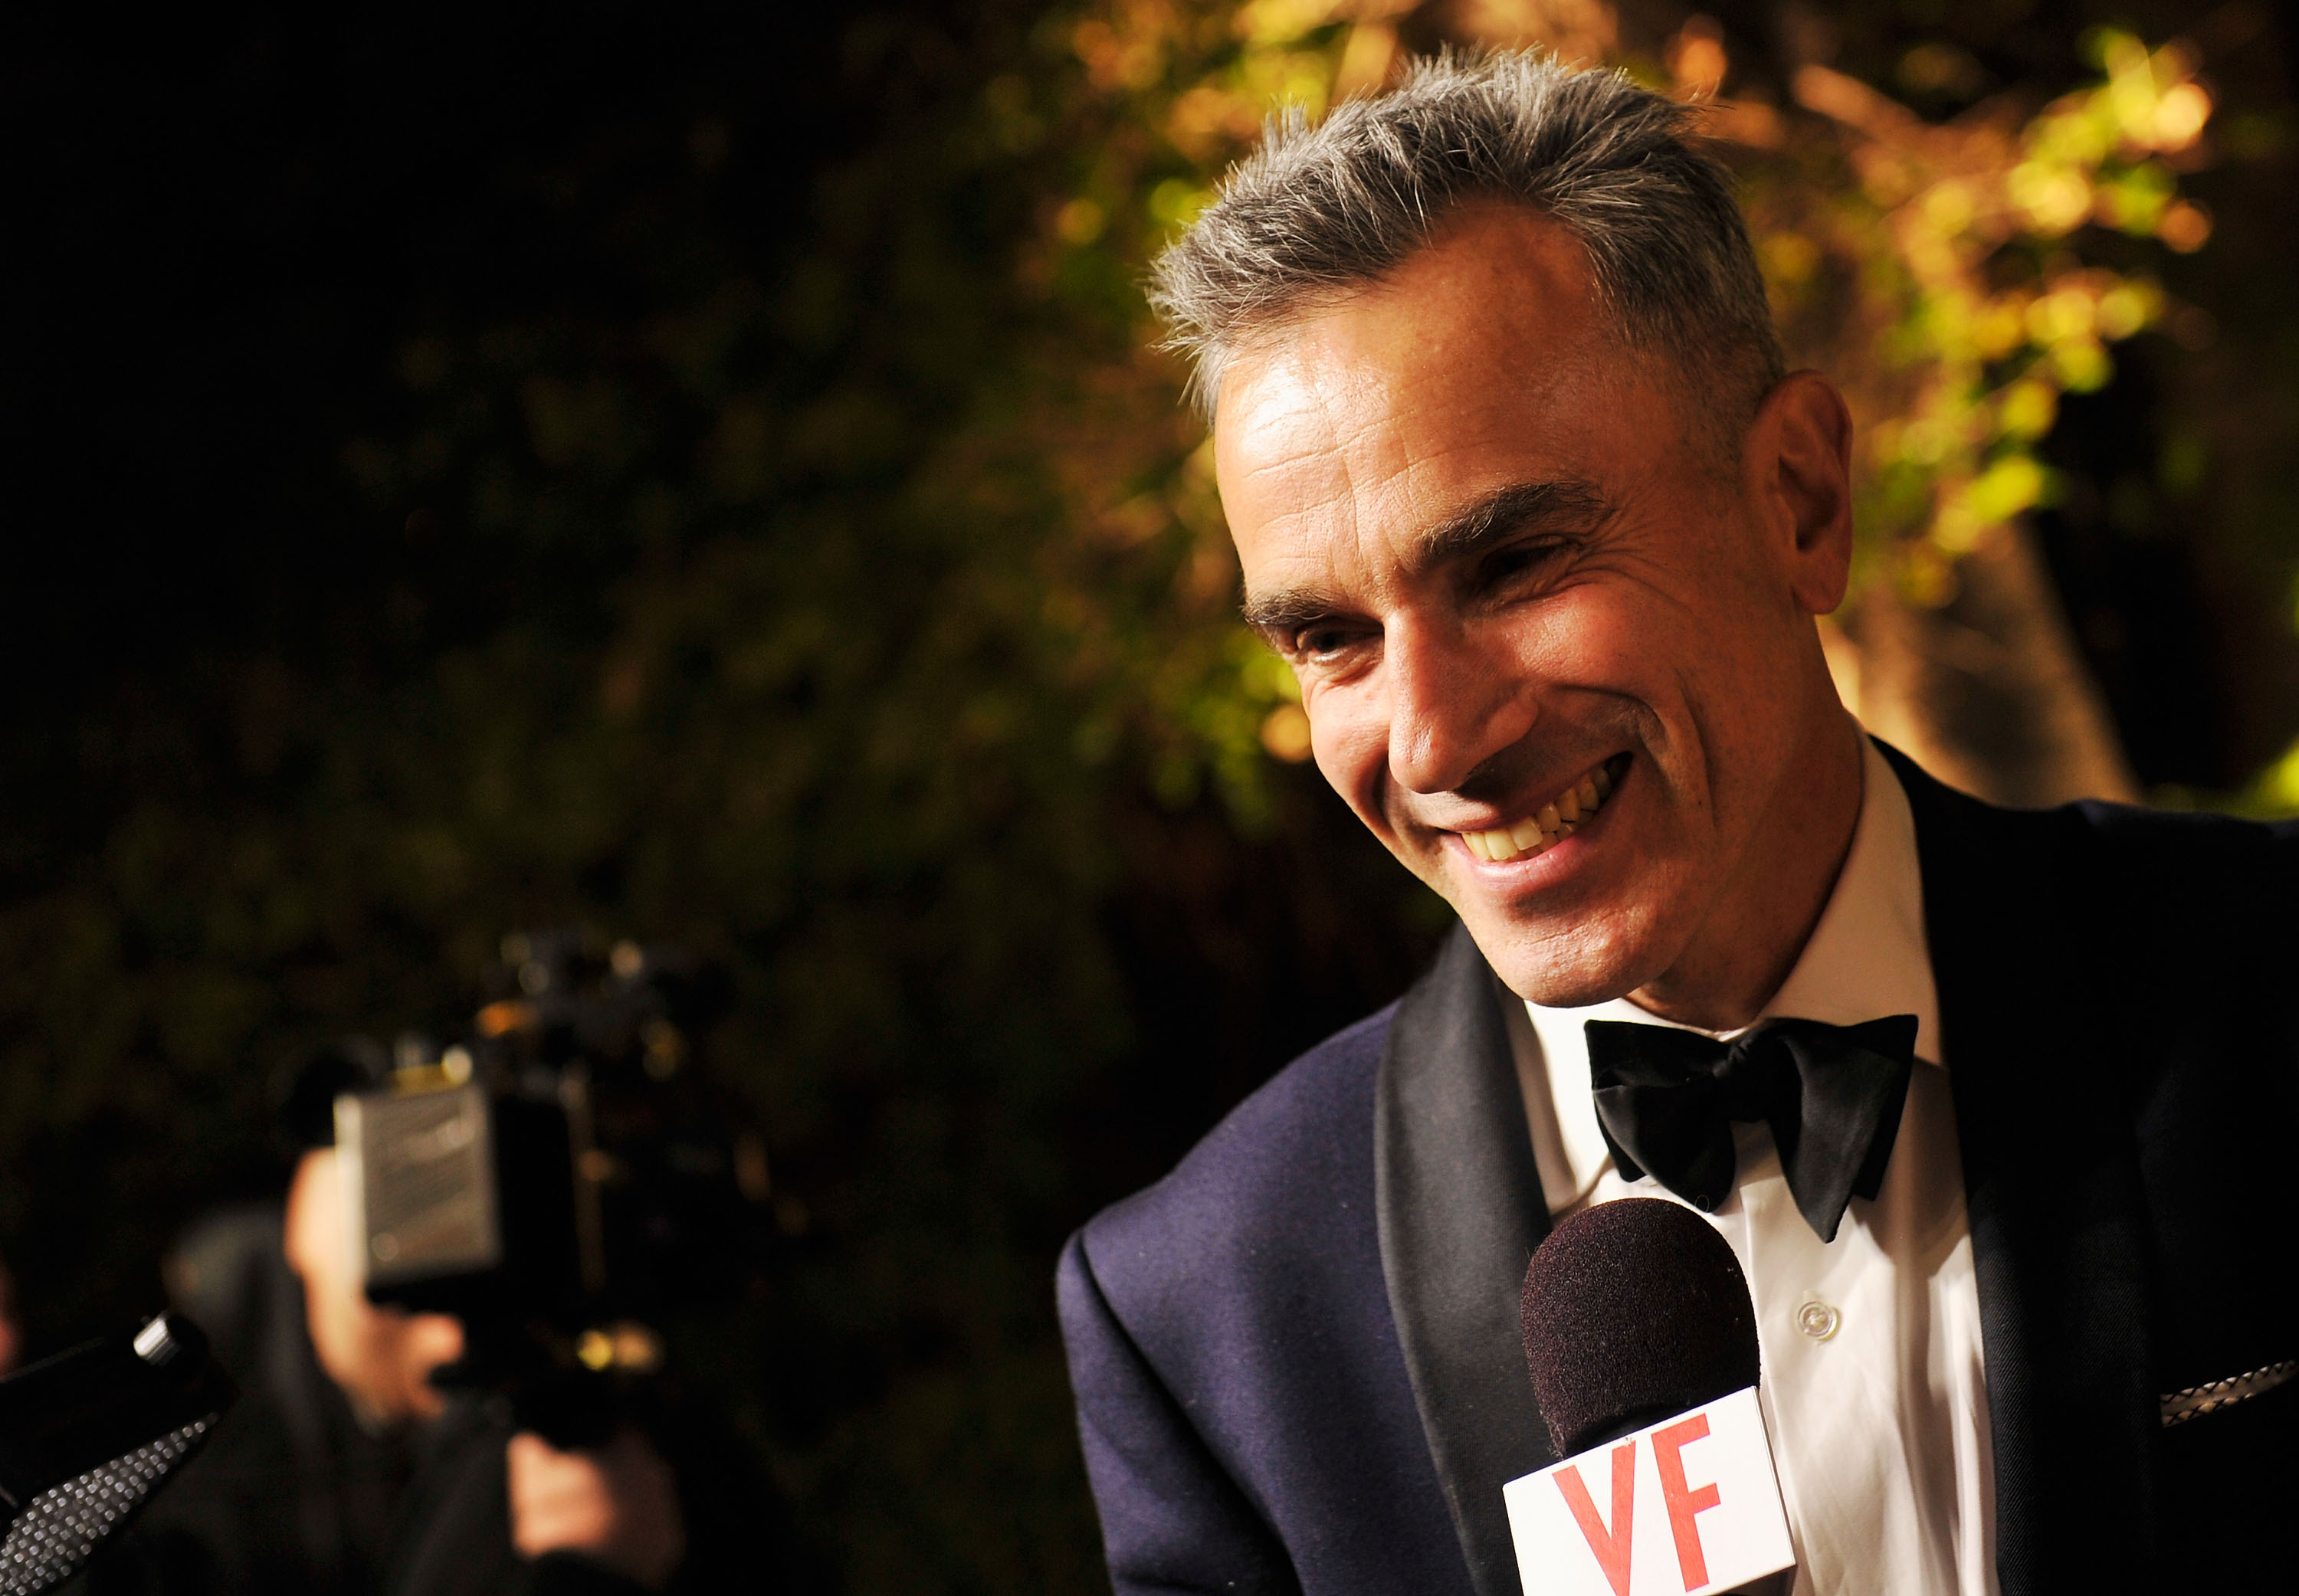 Daniel Day-Lewis arrives for the 2013 Vanity Fair Oscar Party hosted by Graydon Carter at Sunset Tower on February 24, 2013.